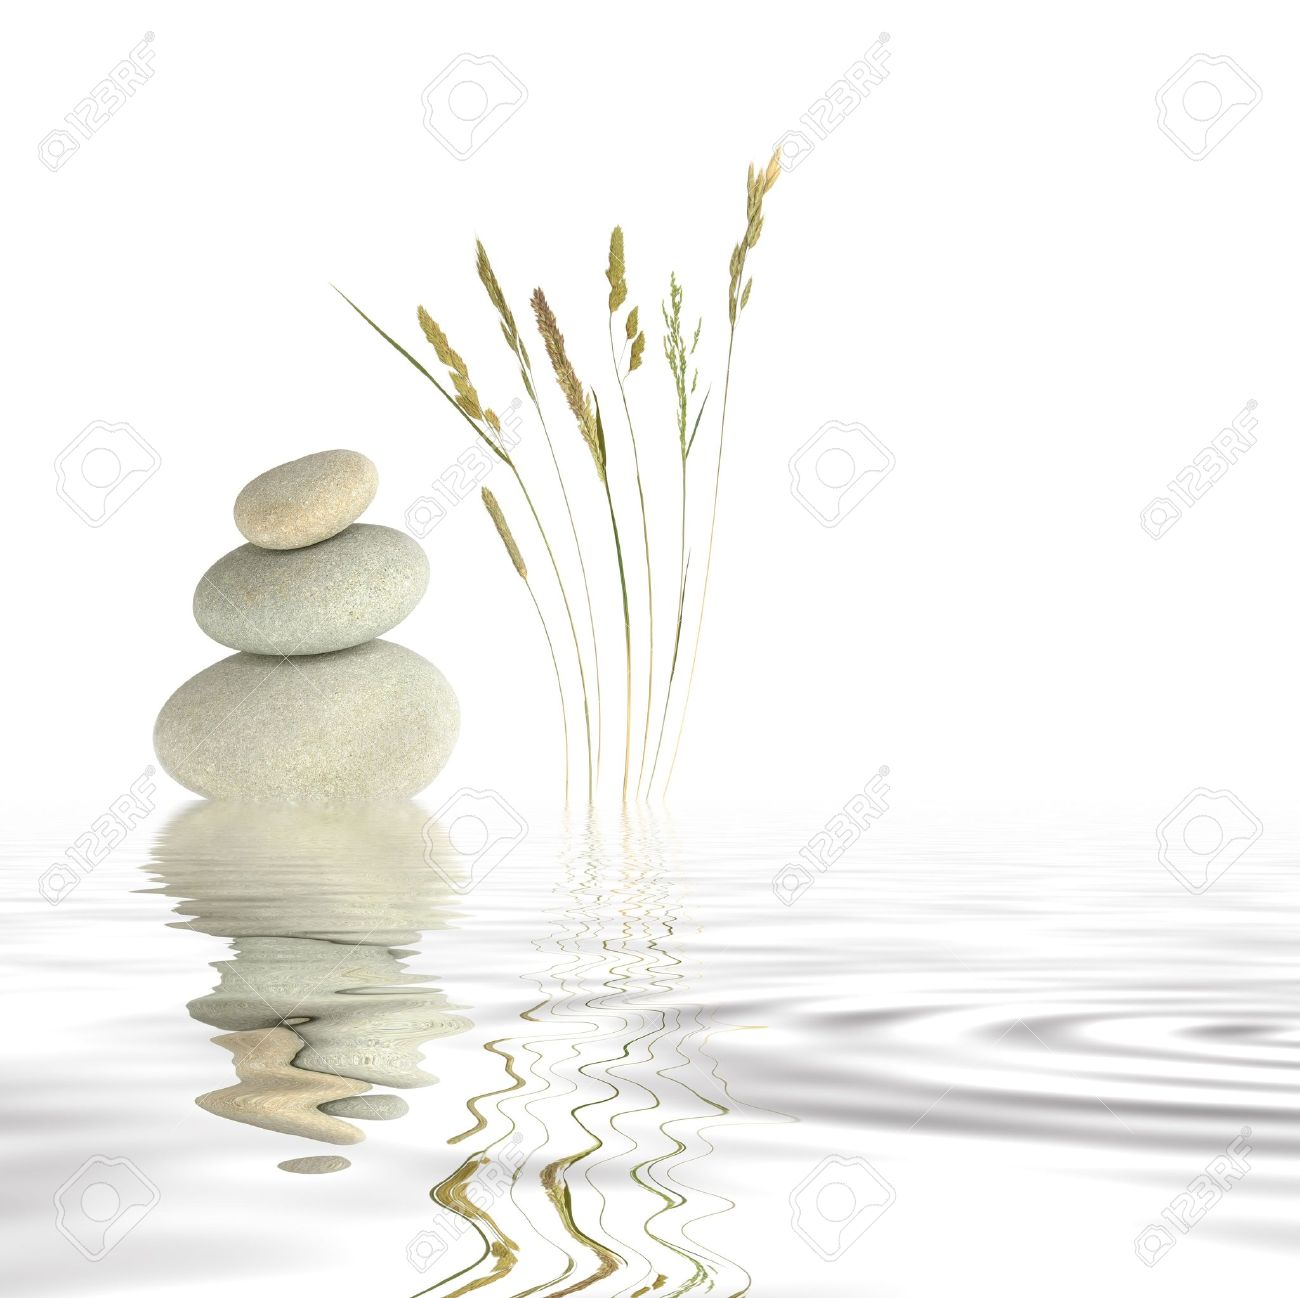 Abstract of three natural grey pebbles balanced on top of each other, with a selection of wild grasses to one side reflected over gray rippled water. Set against a white background. Stock Photo - 3214991